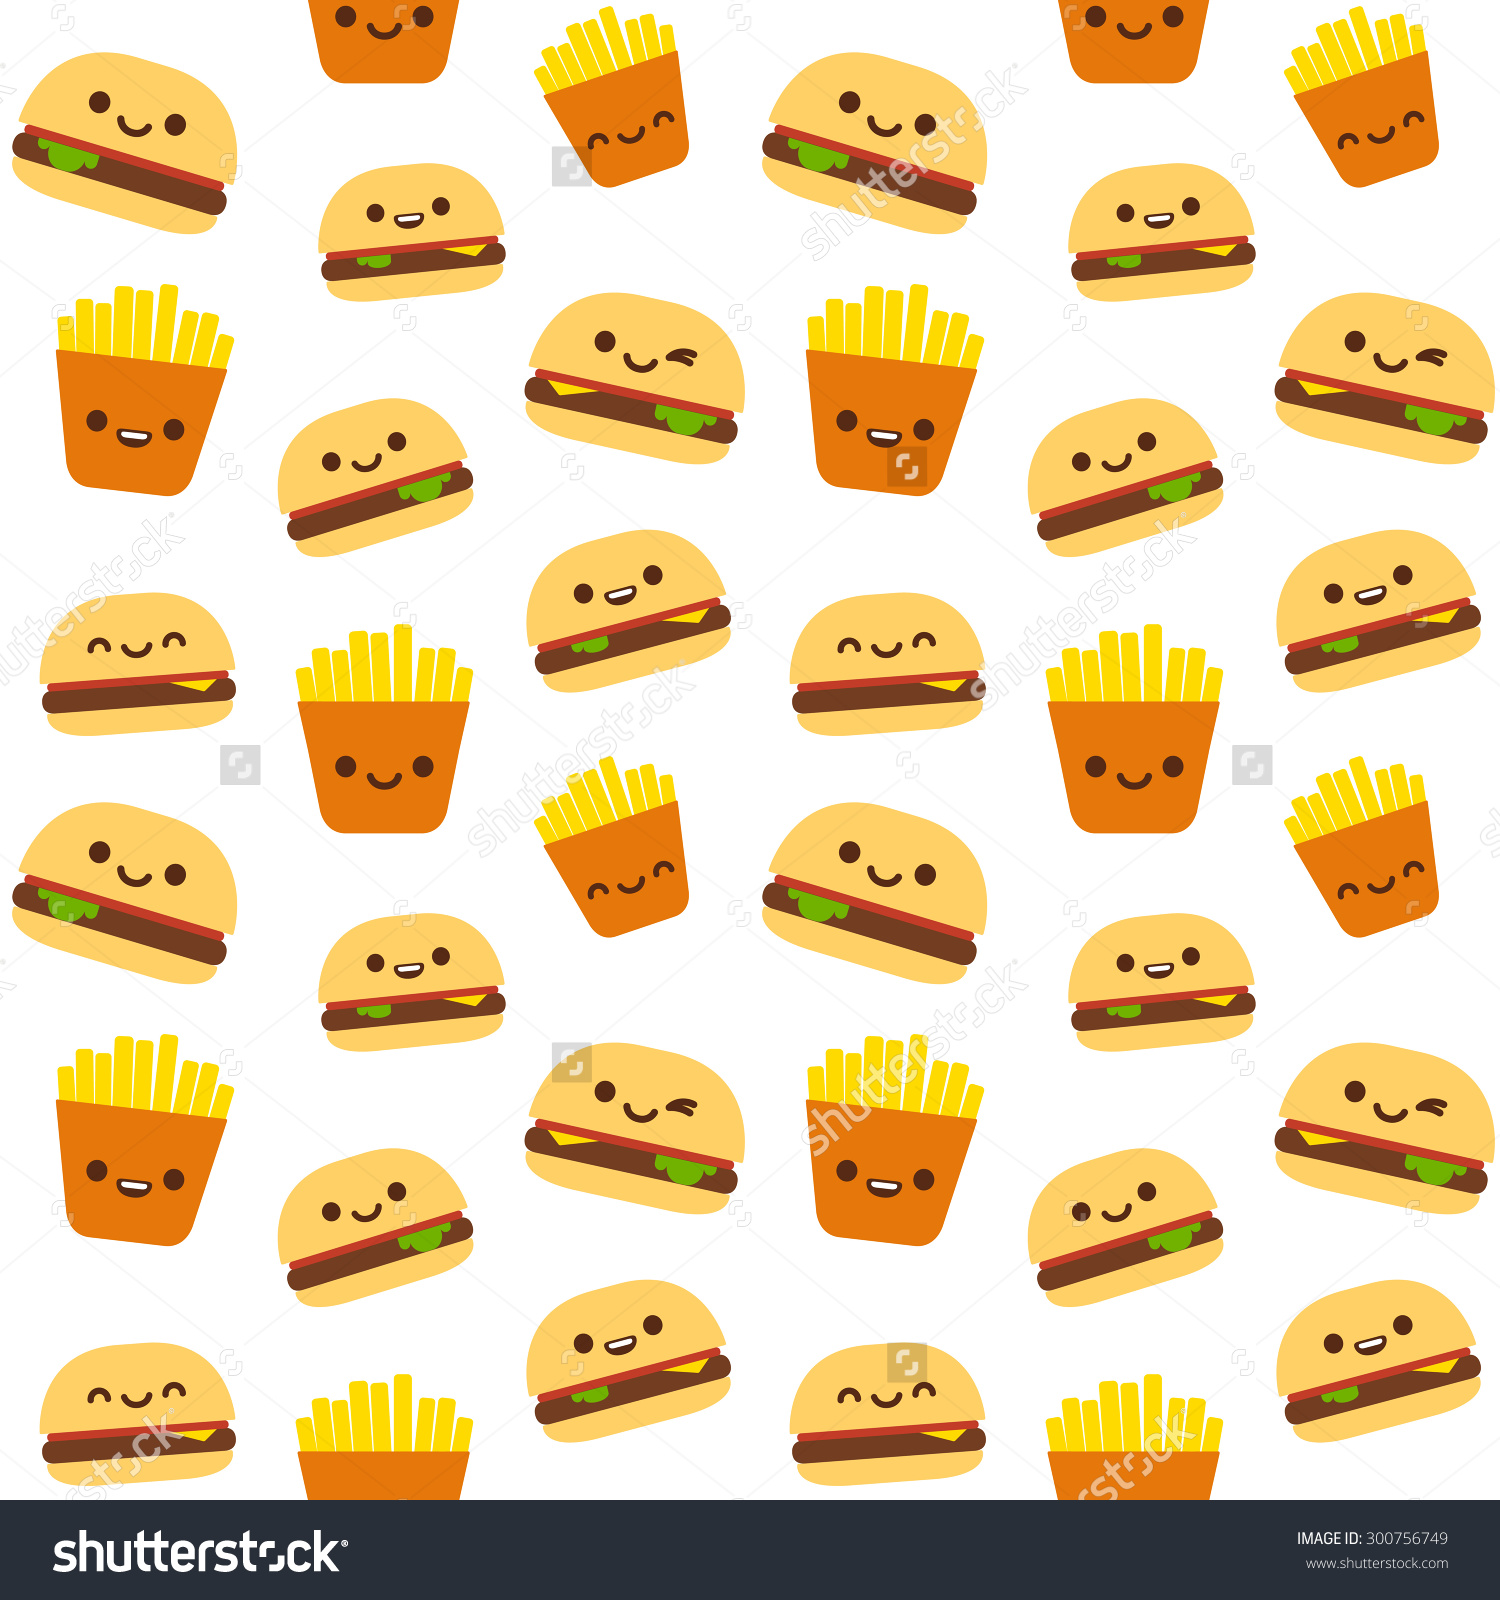 Smiley face food clipart.